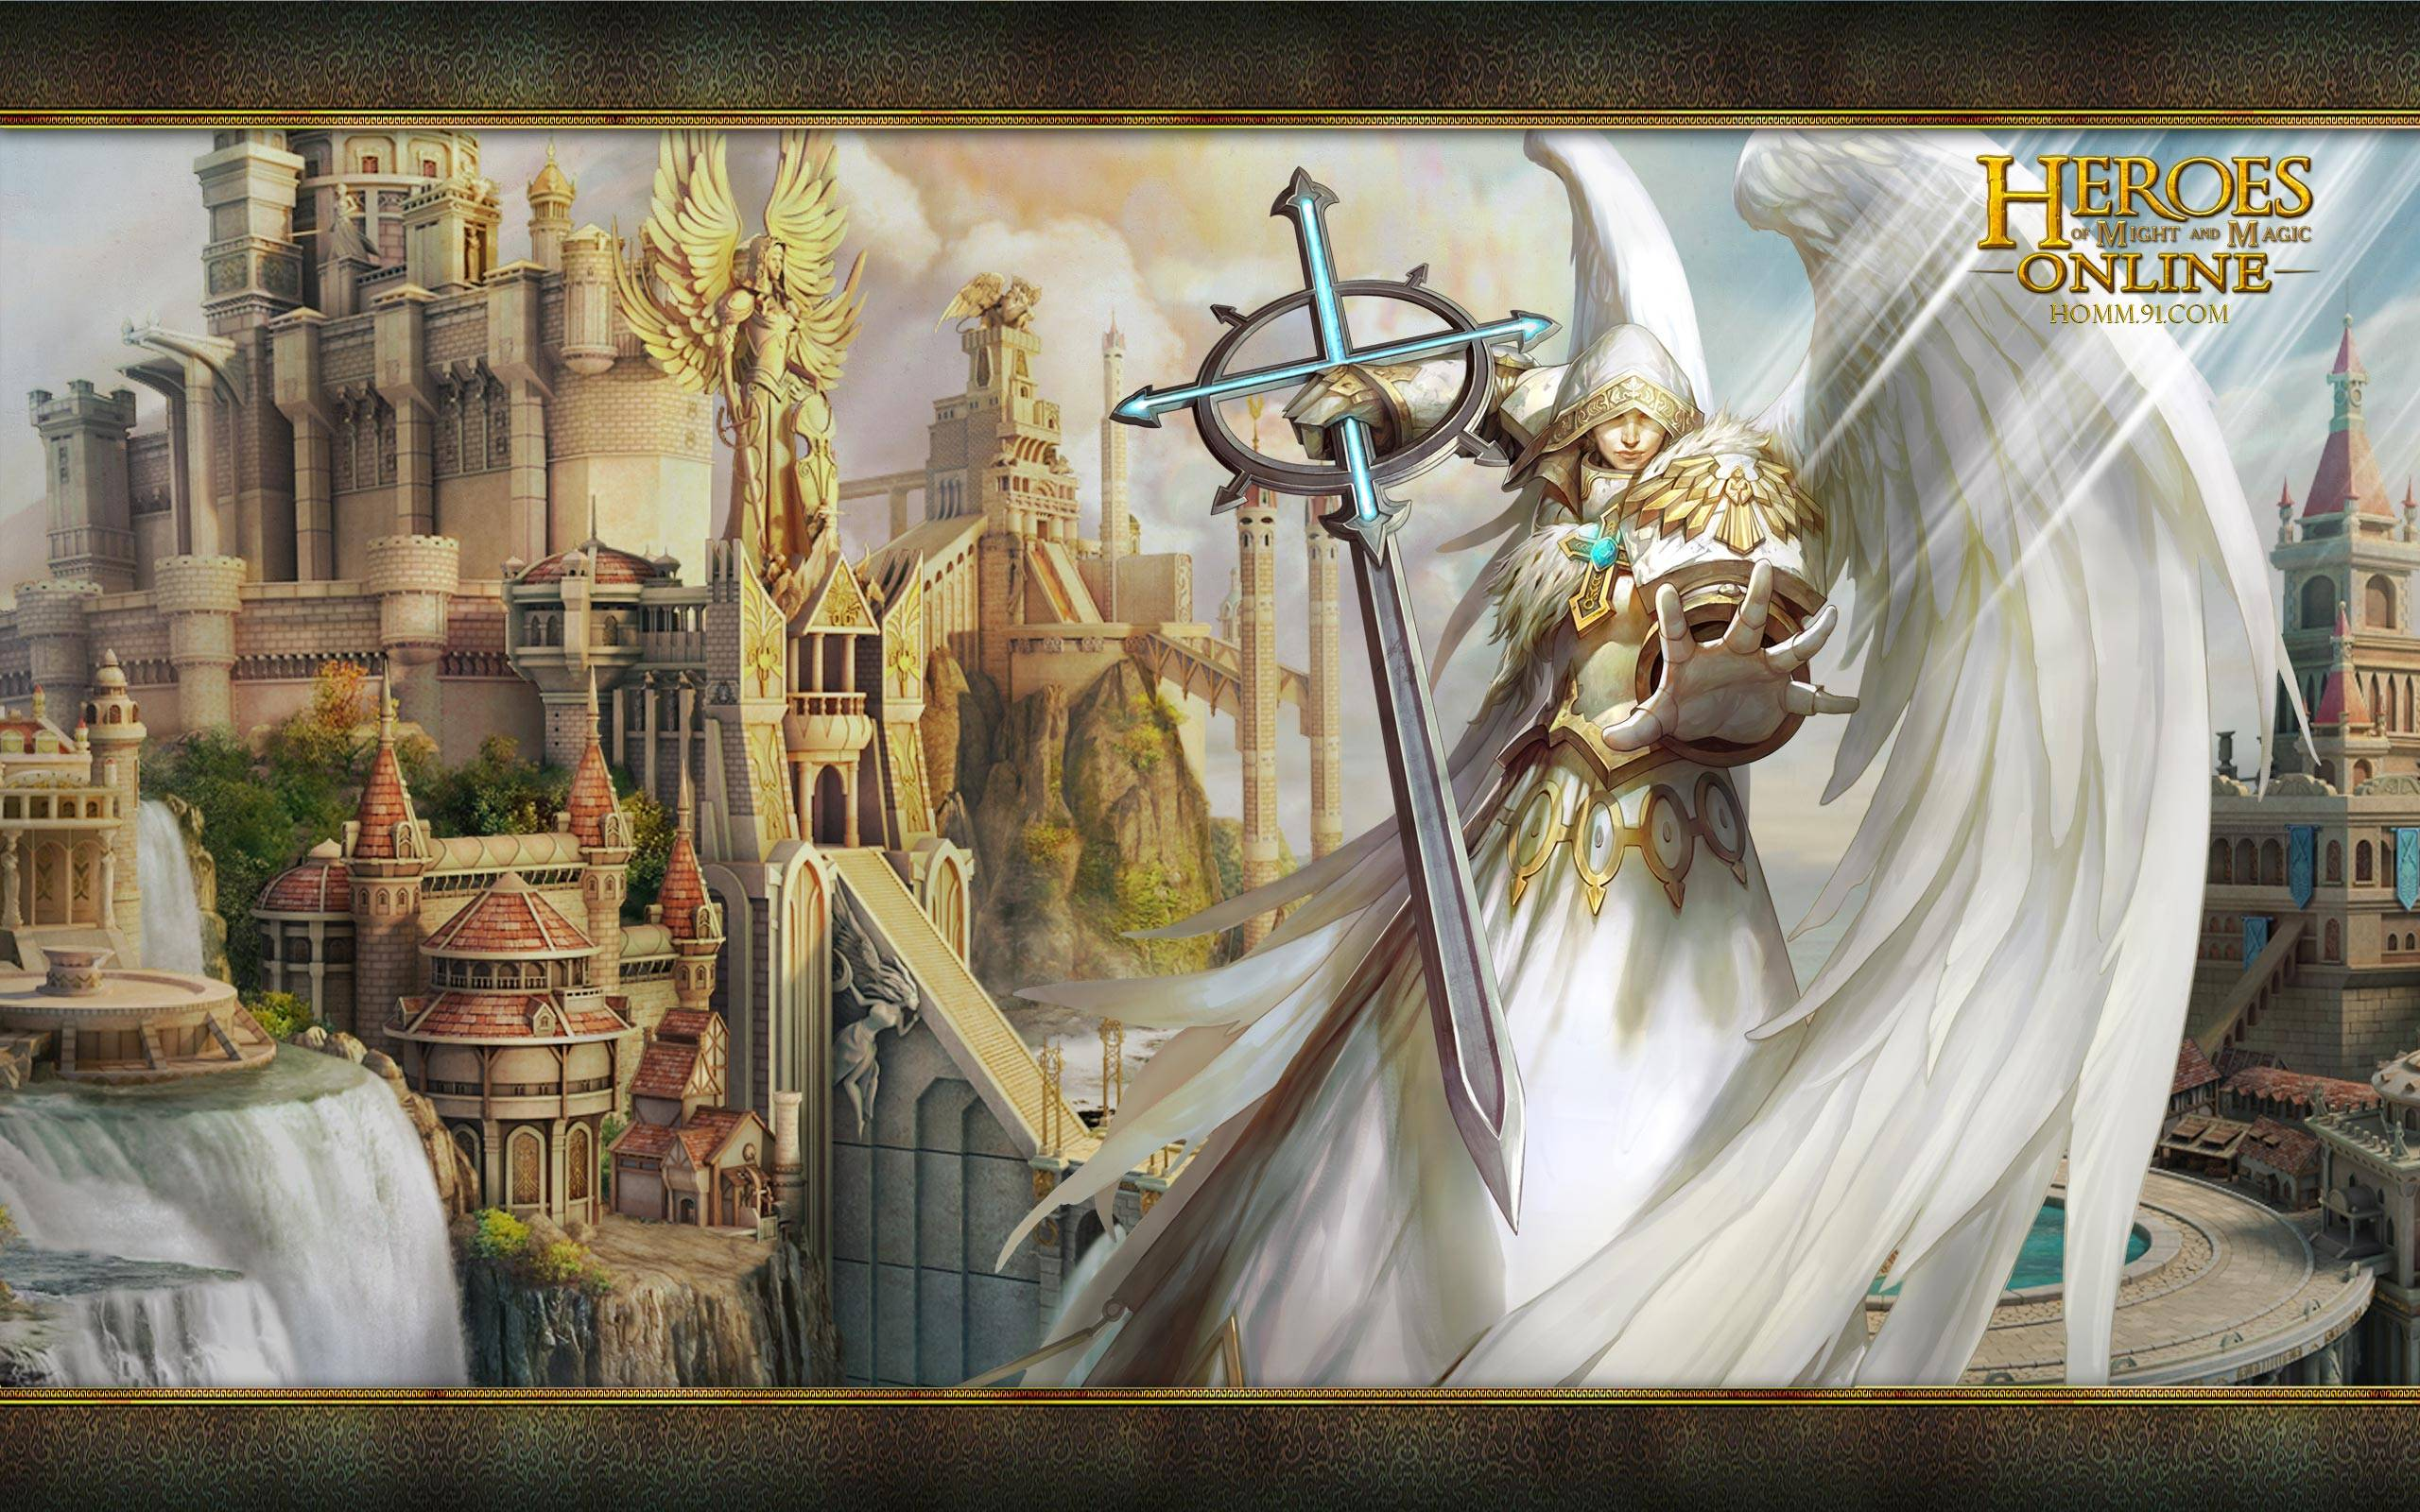 Heroes Of Might And Magic Wallpapers Wallpaper Cave